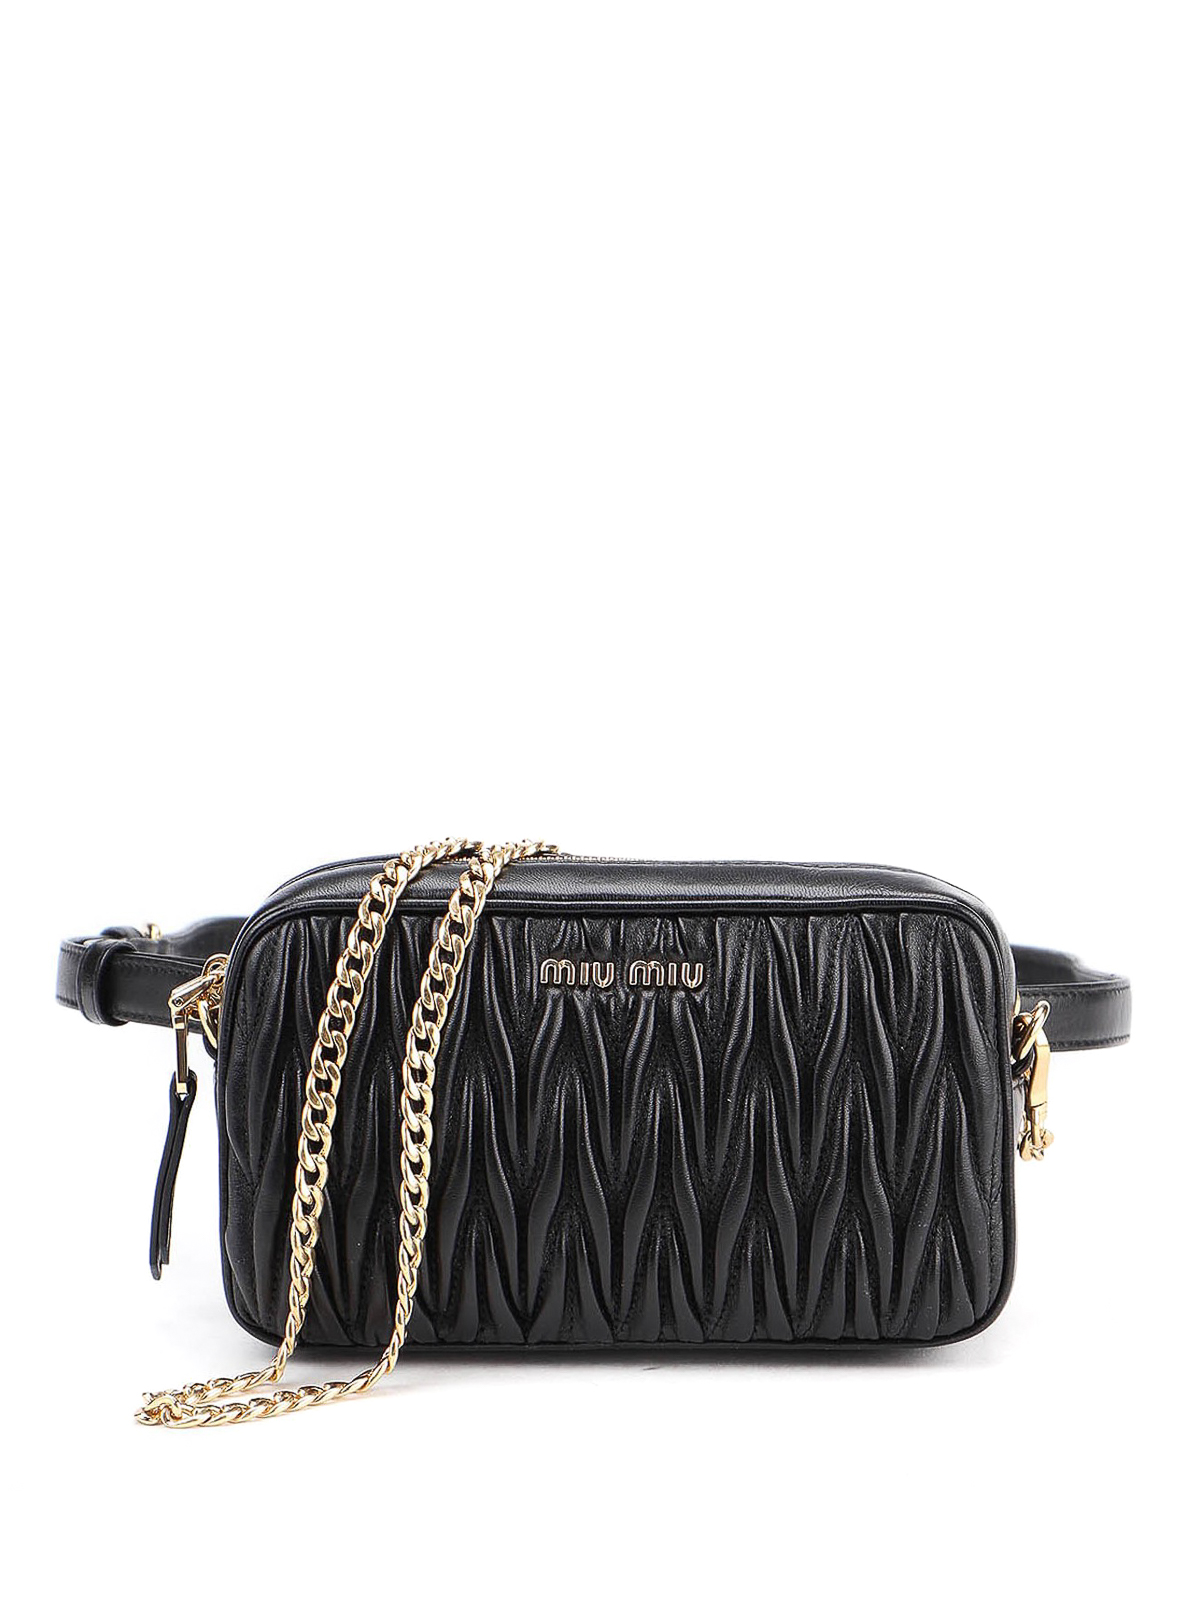 Miu Miu MATELASSE BELT BAG